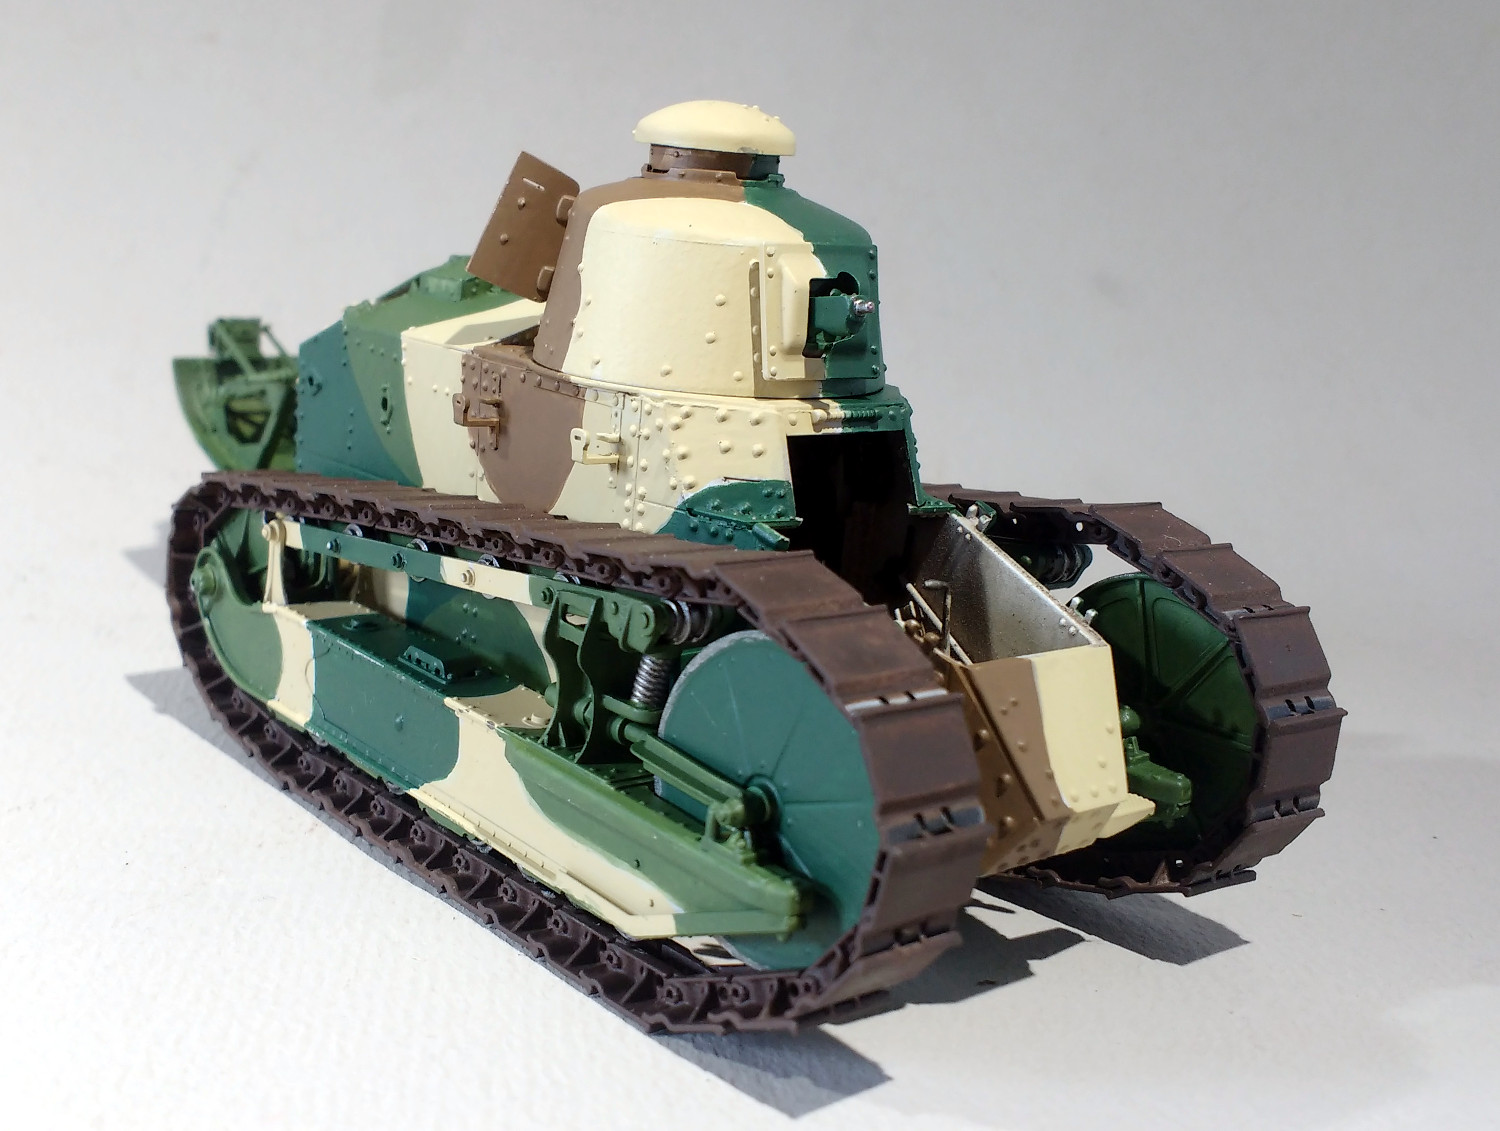 Quelques FT (Meng 1/35) - Page 2 N36iJb-F31-69